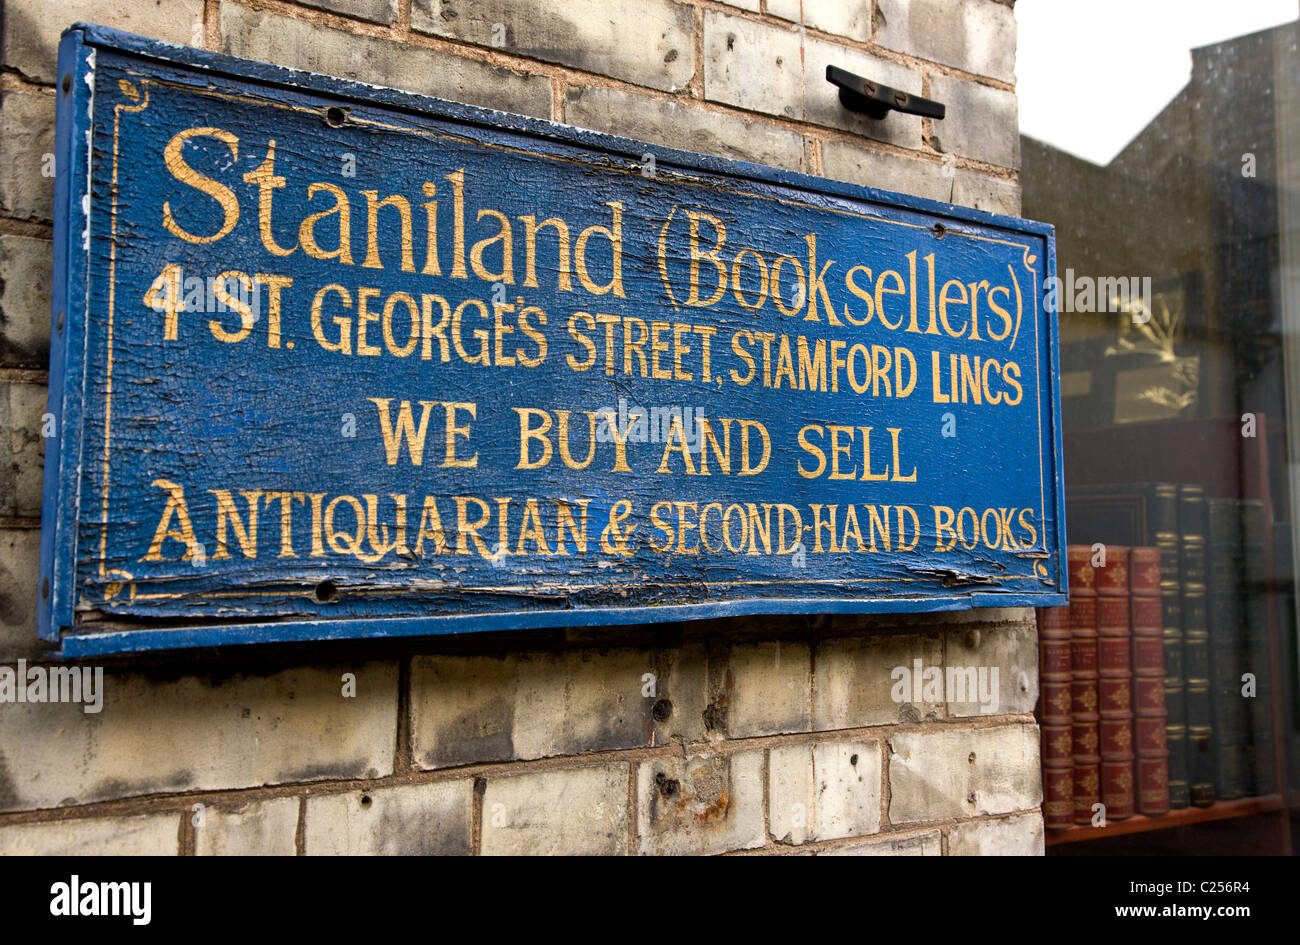 Antique bookseller - Stock Image